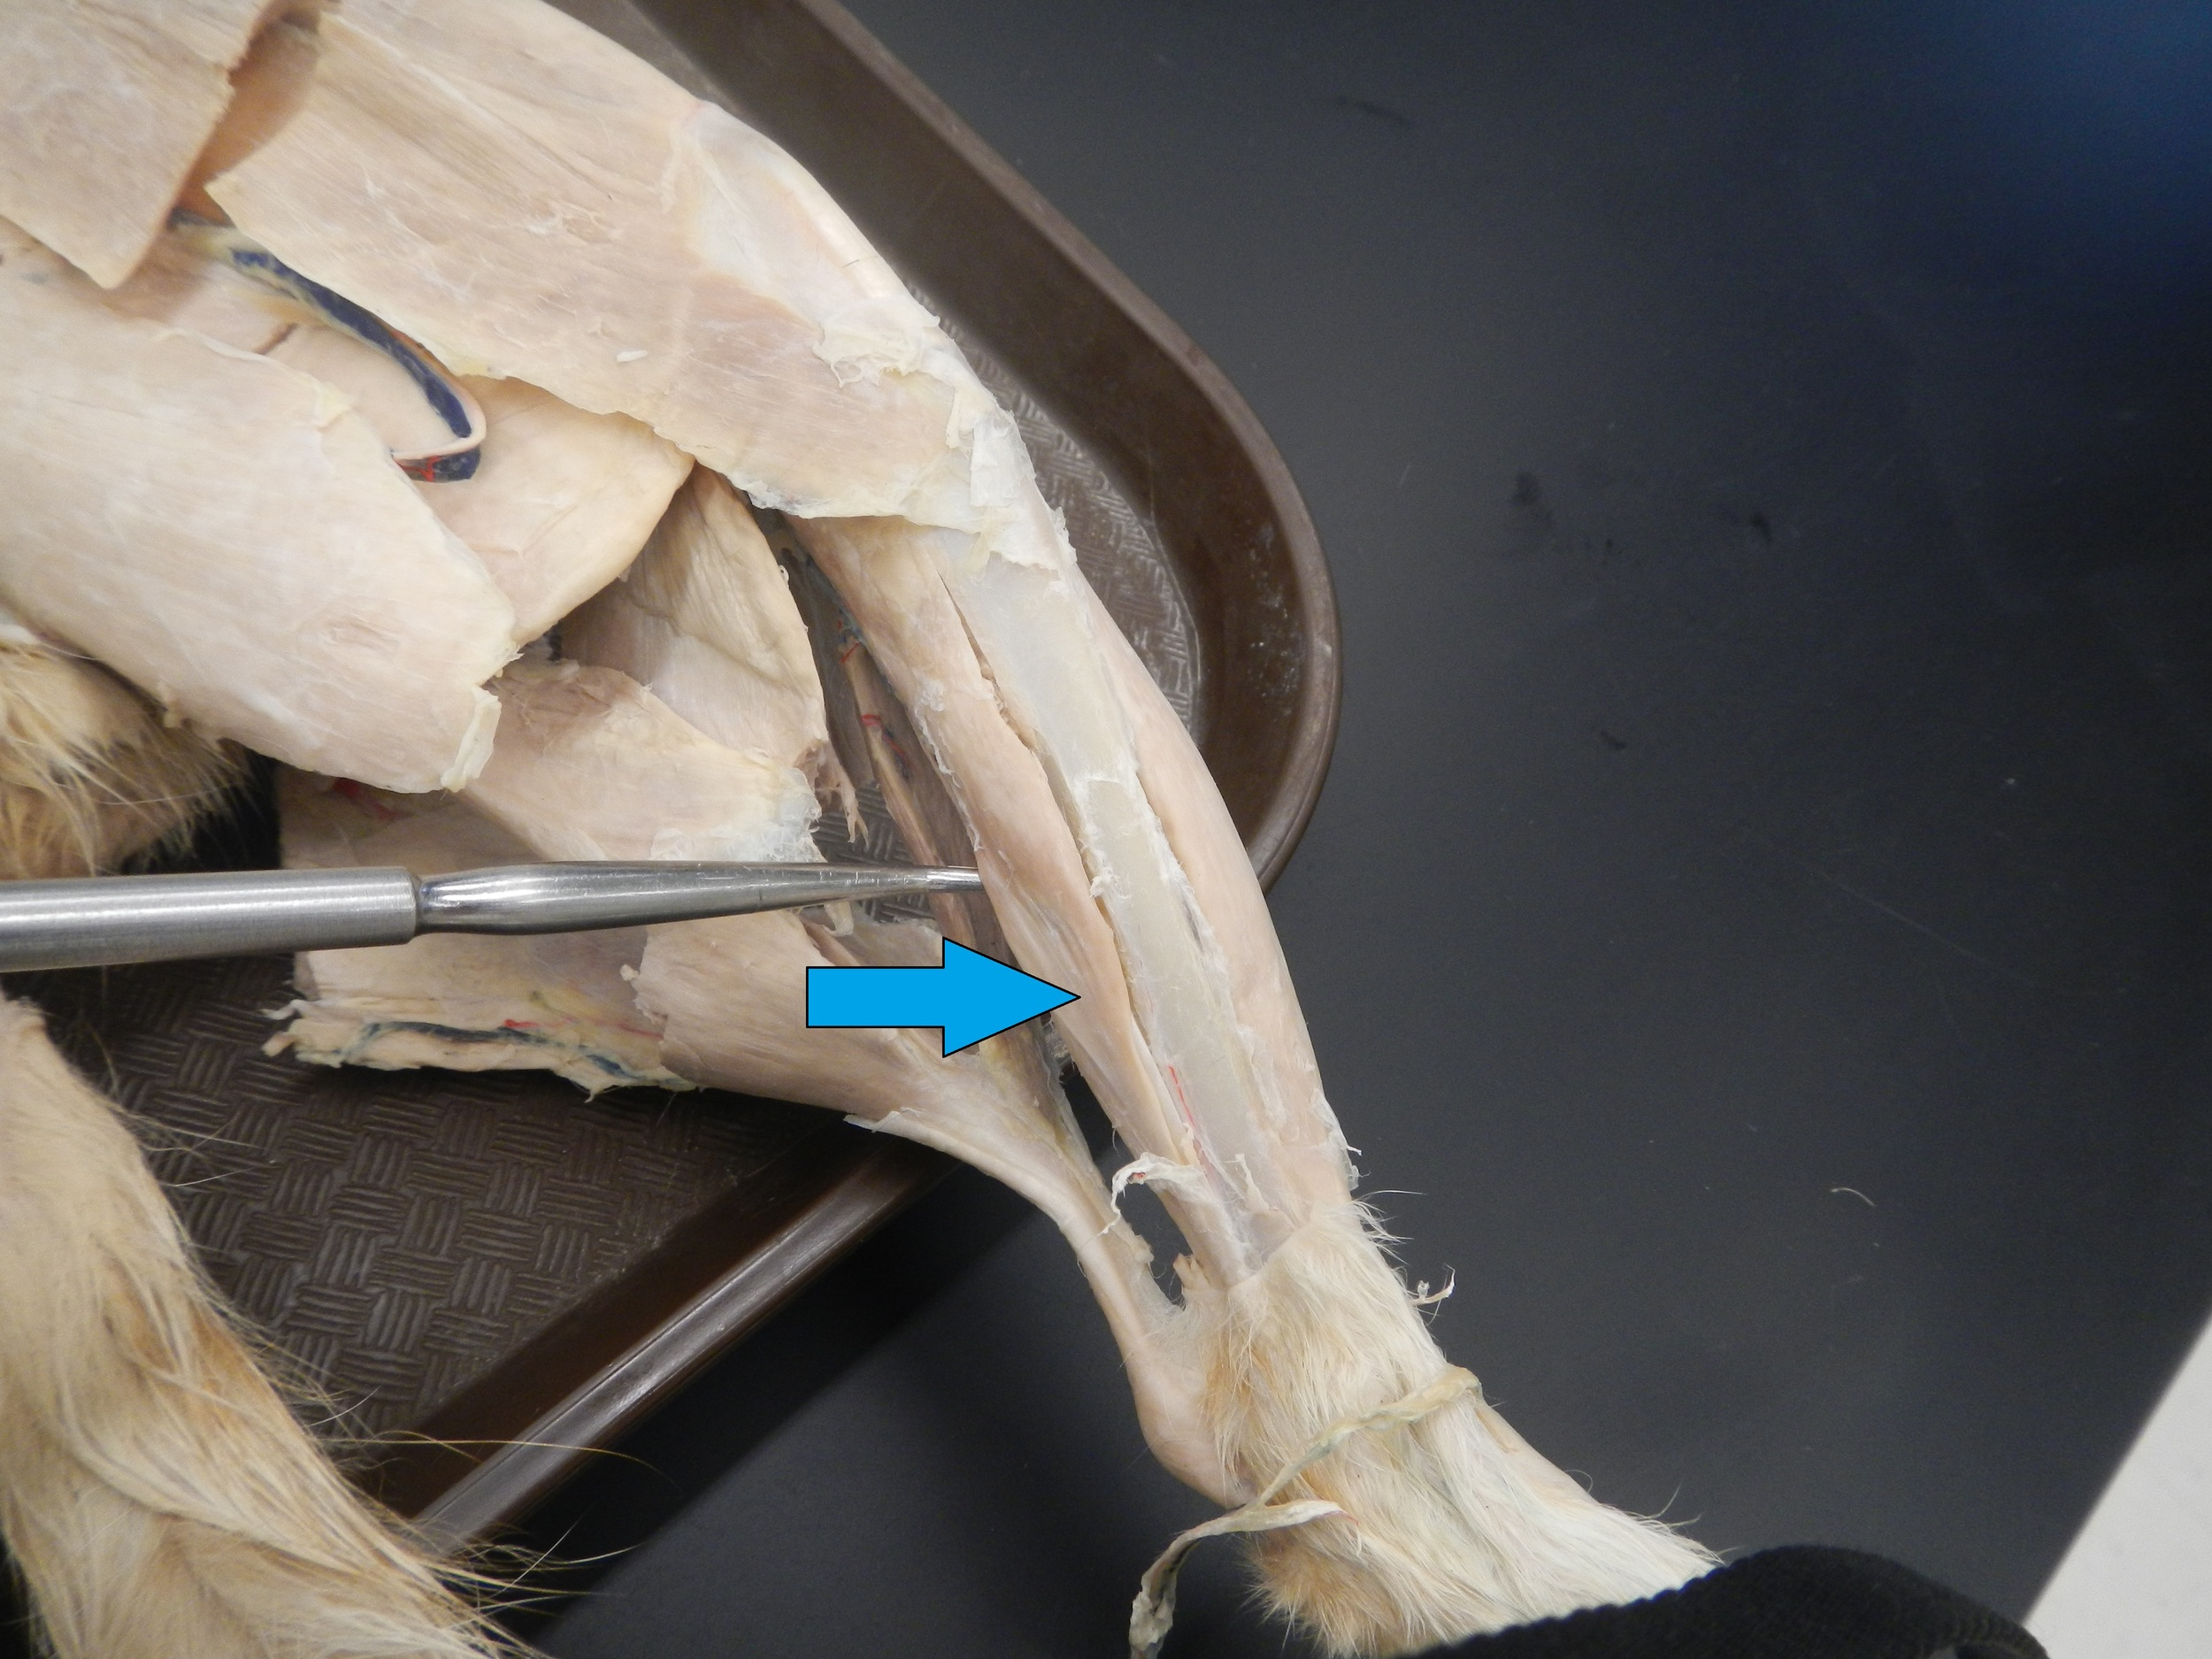 Flexor Digitorum Longus   O - Lateral condyle of tibia, anterior surface of fibula andinterosseous membrane   I - Middle and distal phalanges of lateral 4 digits  F - Ankle plantar flexion and toe flexion